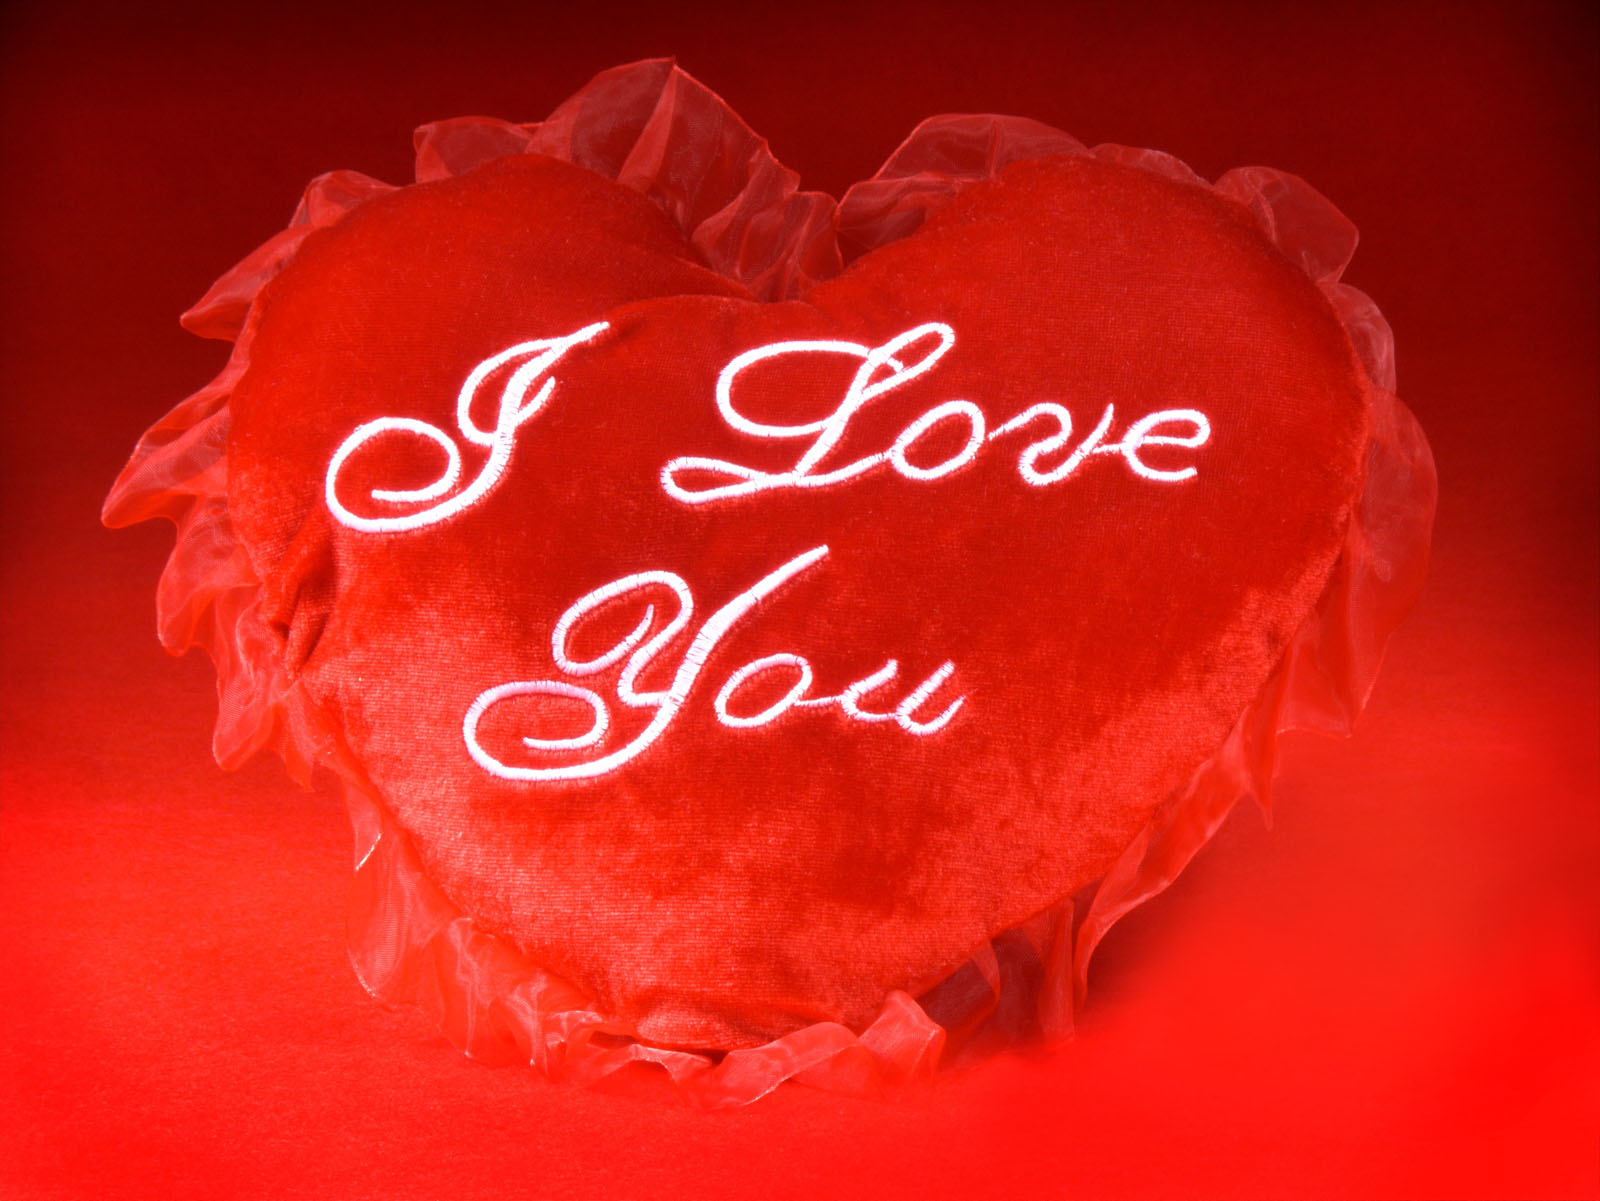 i love you wallpaper,red,heart,valentine's day,love,organ